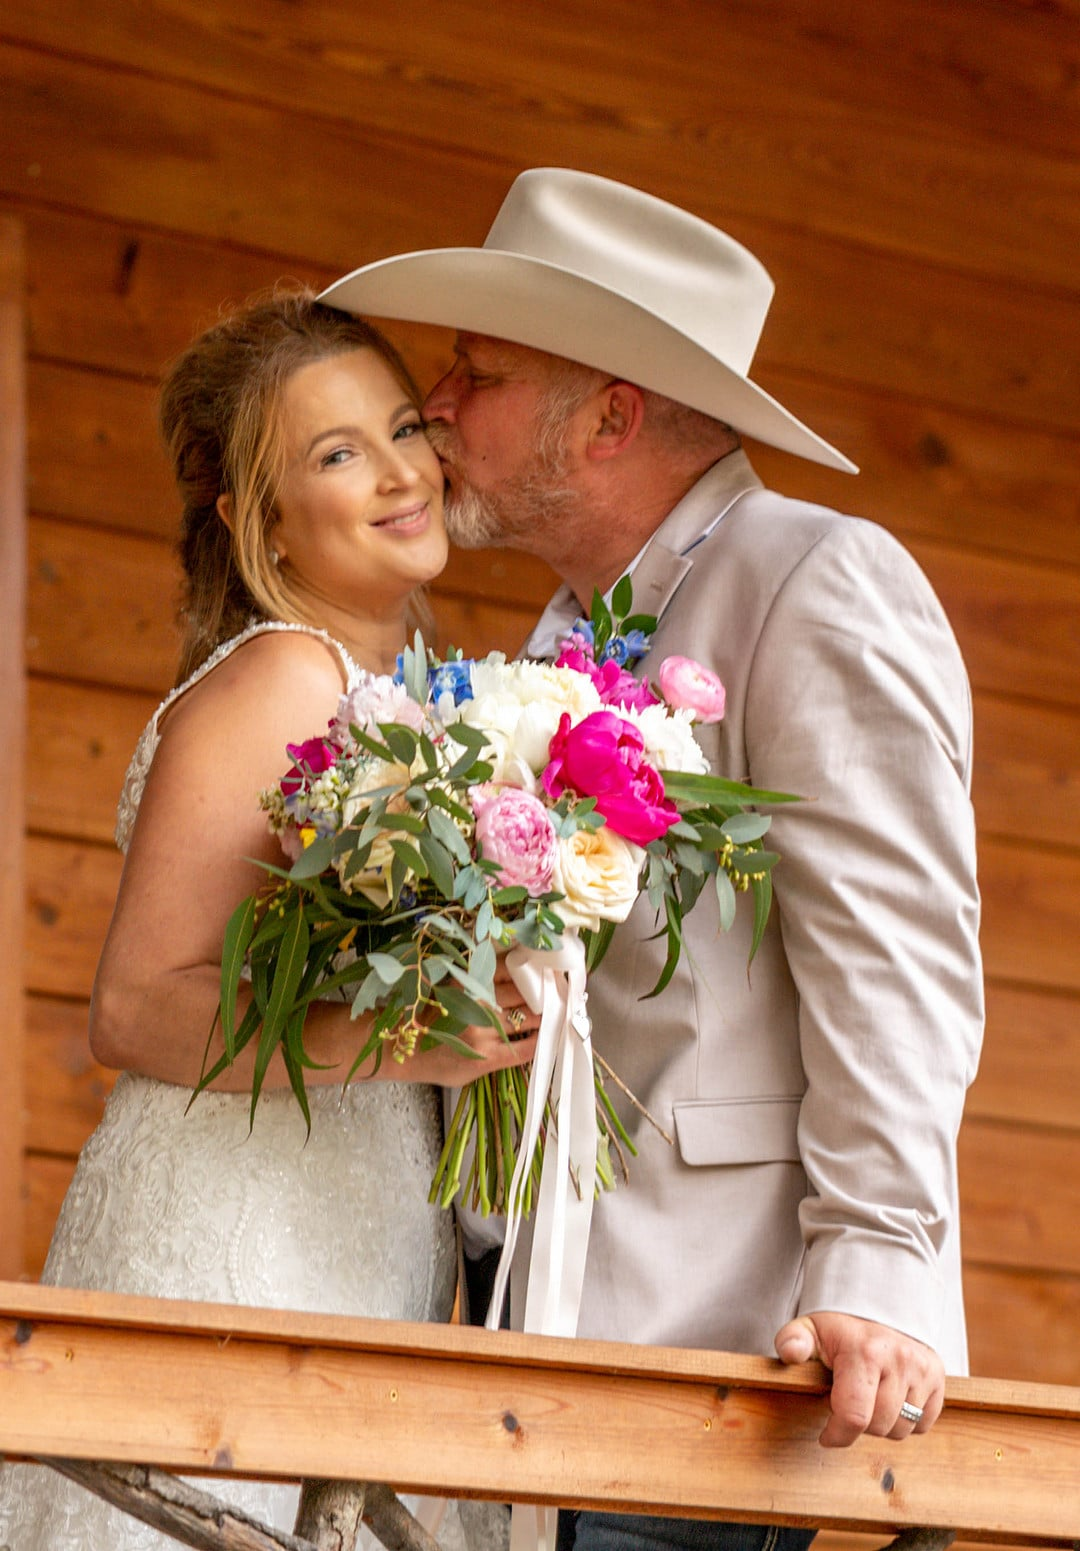 bride looks at camera smiling while holding bouquet in front of her and groom stands next to her holding the railing in front of them and kissing her on the cheek